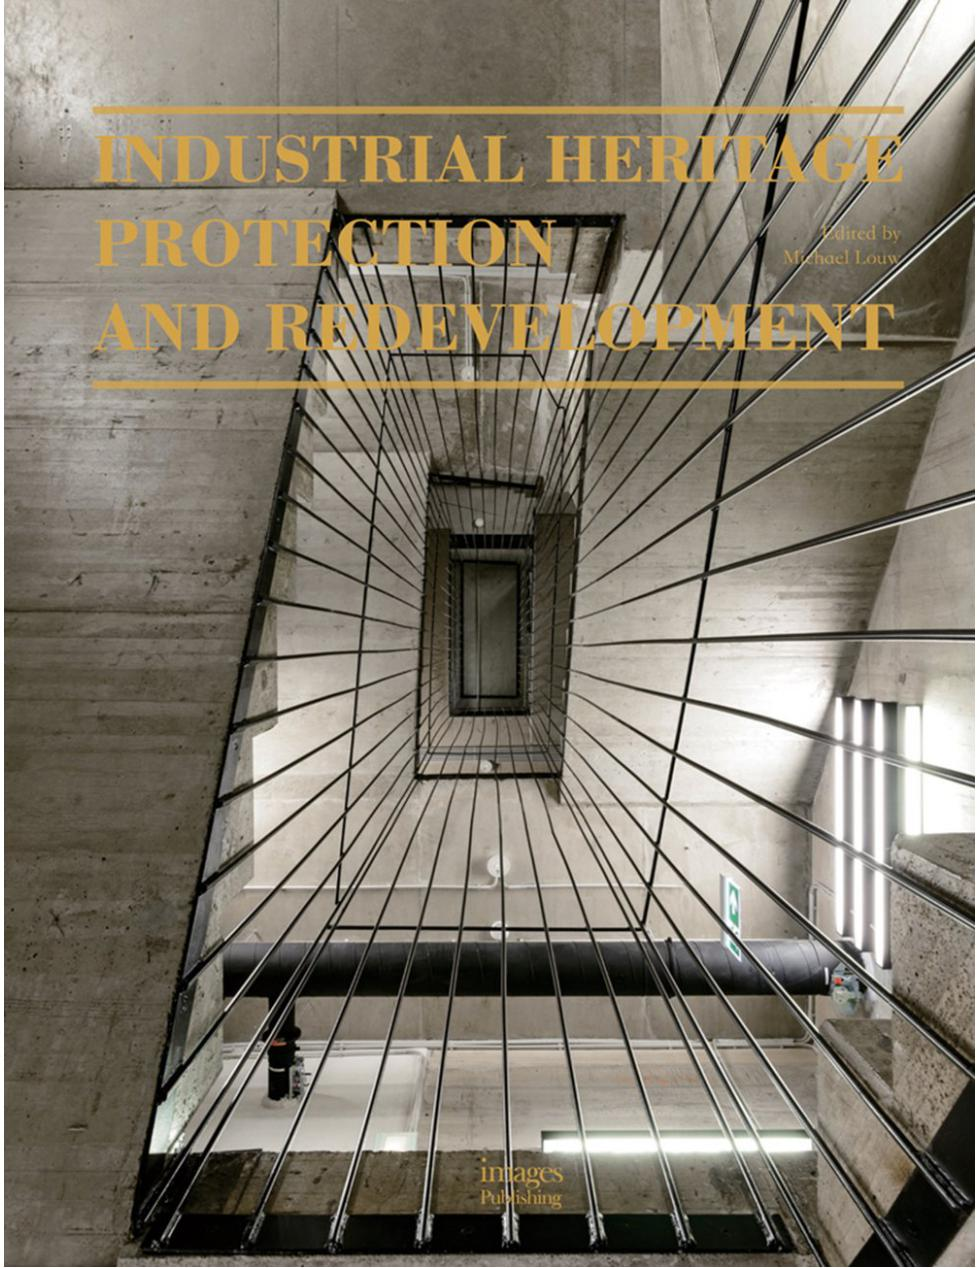 INDUSTRIAL HERITAGE PROTECTION AND REDEVELOPMENT - Boekenmarkt de Markies